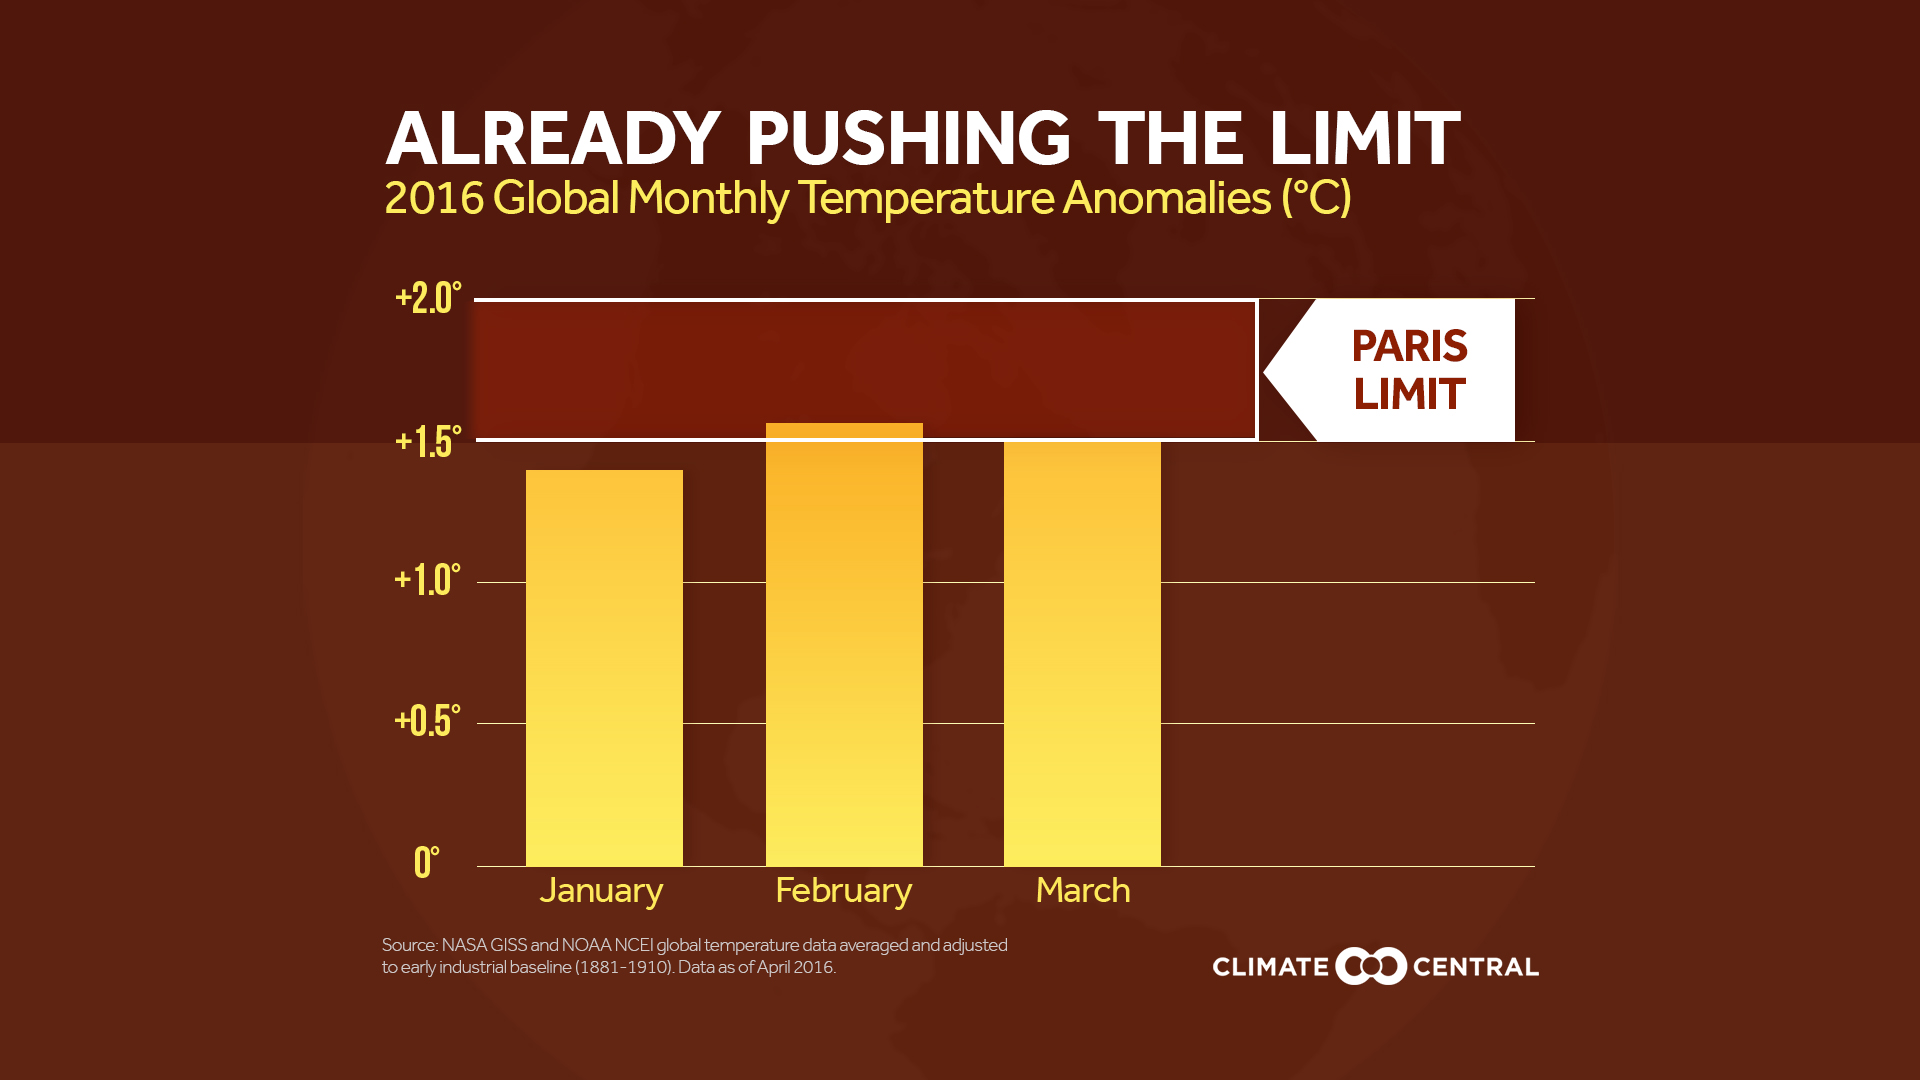 2016 Temperatures Already Pushing COP21 Limits